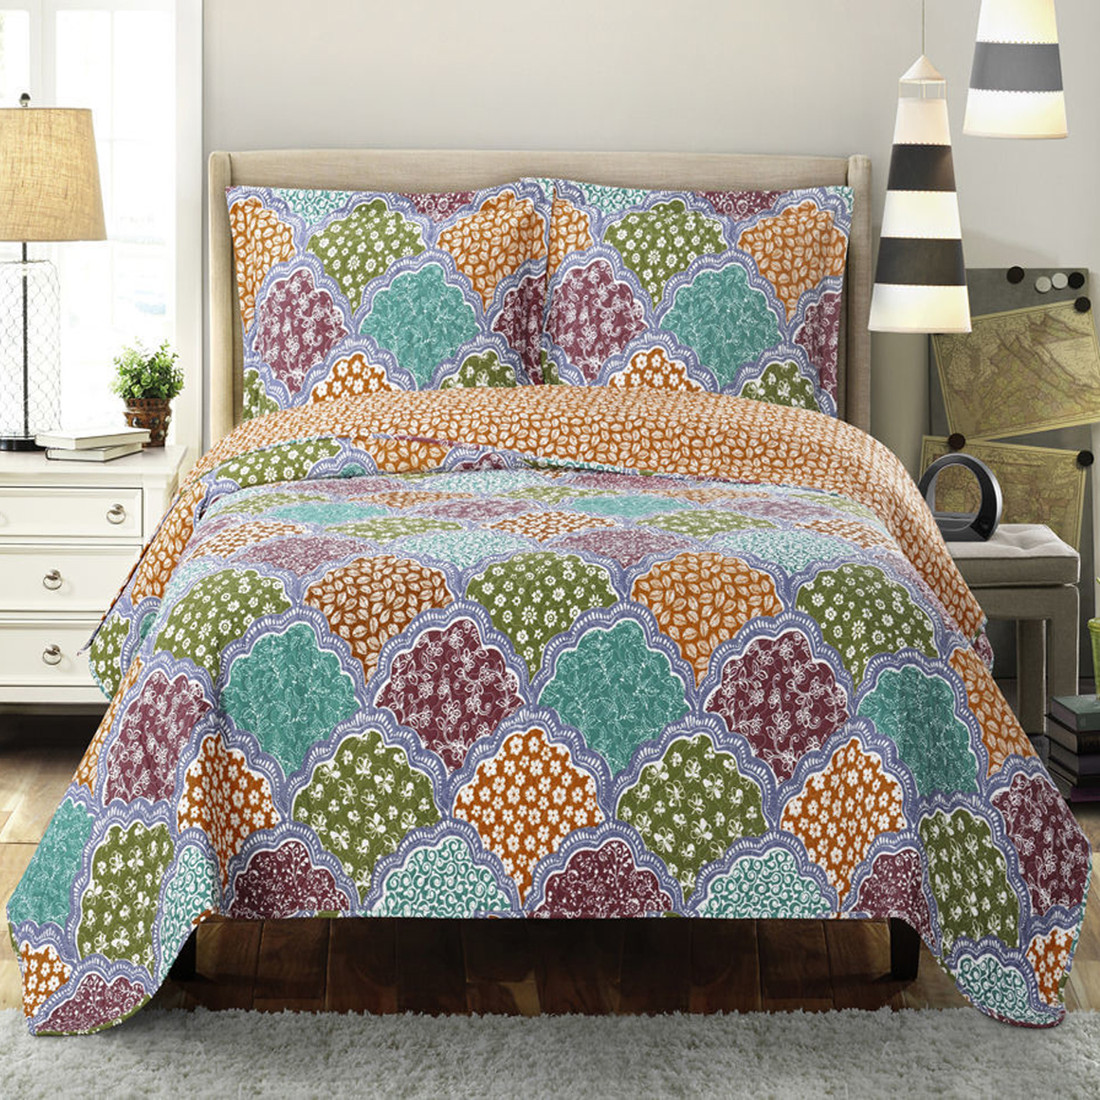 Dahlia Quilts On Sale